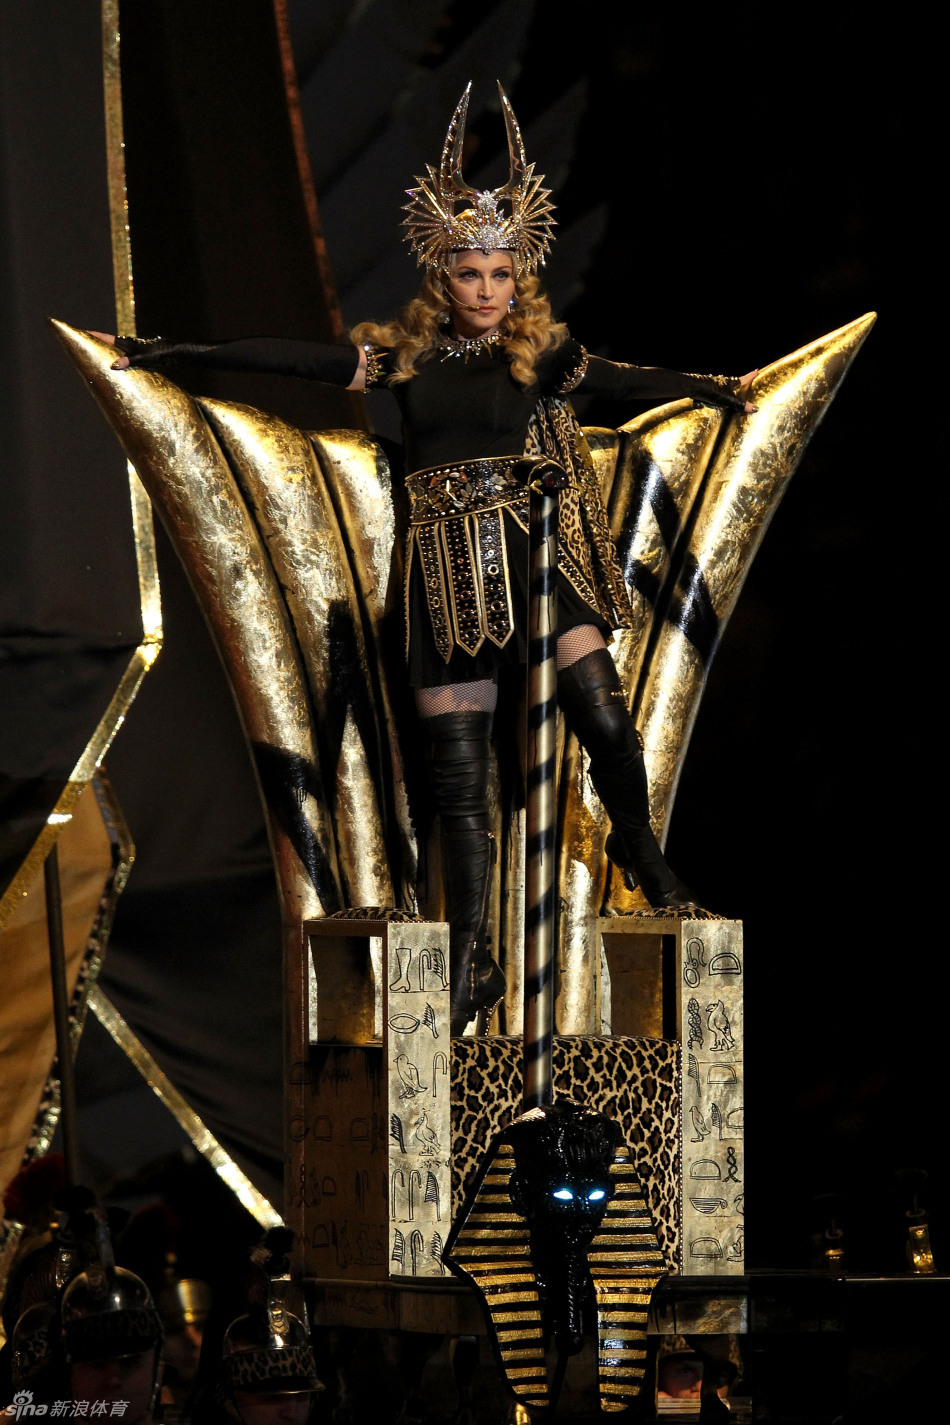 Madonna performs during halftime of the NFL Super Bowl XLVI football game between the New York Giants and the New England Patriots, Sunday, Feb. 5, 2012, in Indianapolis.